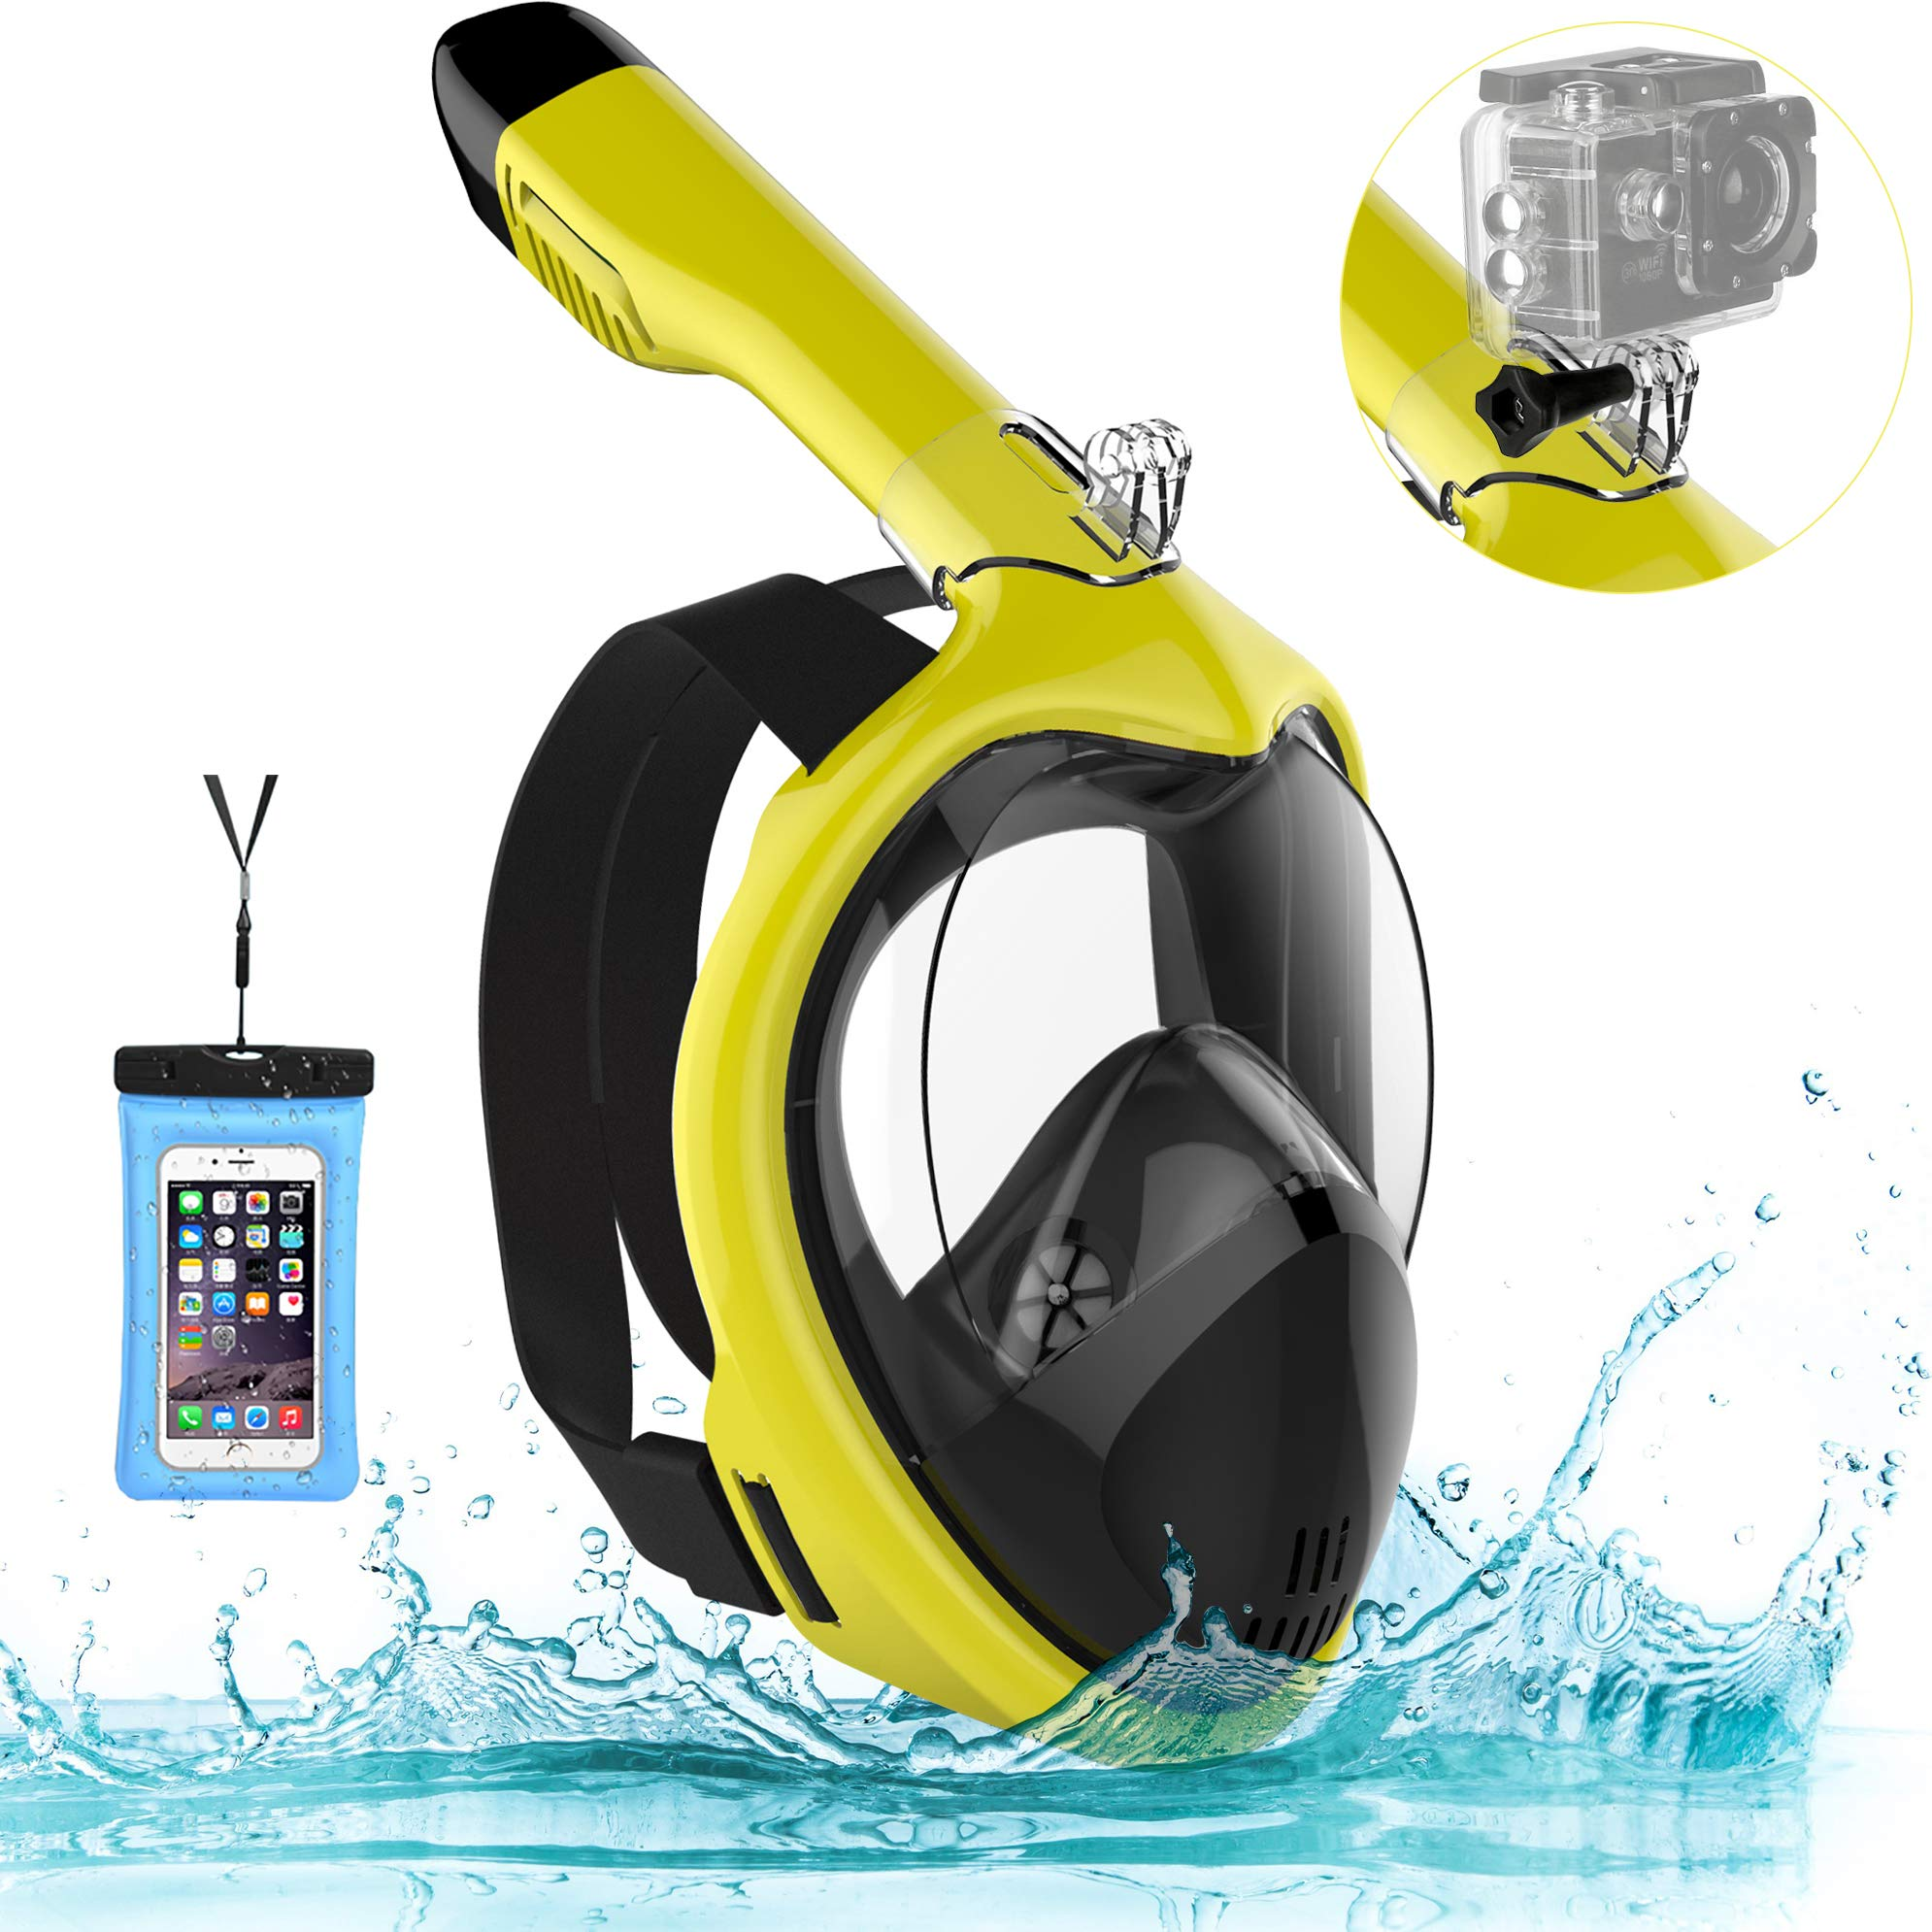 Poppin Kicks Full Face Snorkel Mask for Adult Youth and Kids | 180° Panoramic View Anti-Fog Anti-Leak Easy Breathe GoPro Compatible w/Detachable Camera Mount Bumblebee S/M